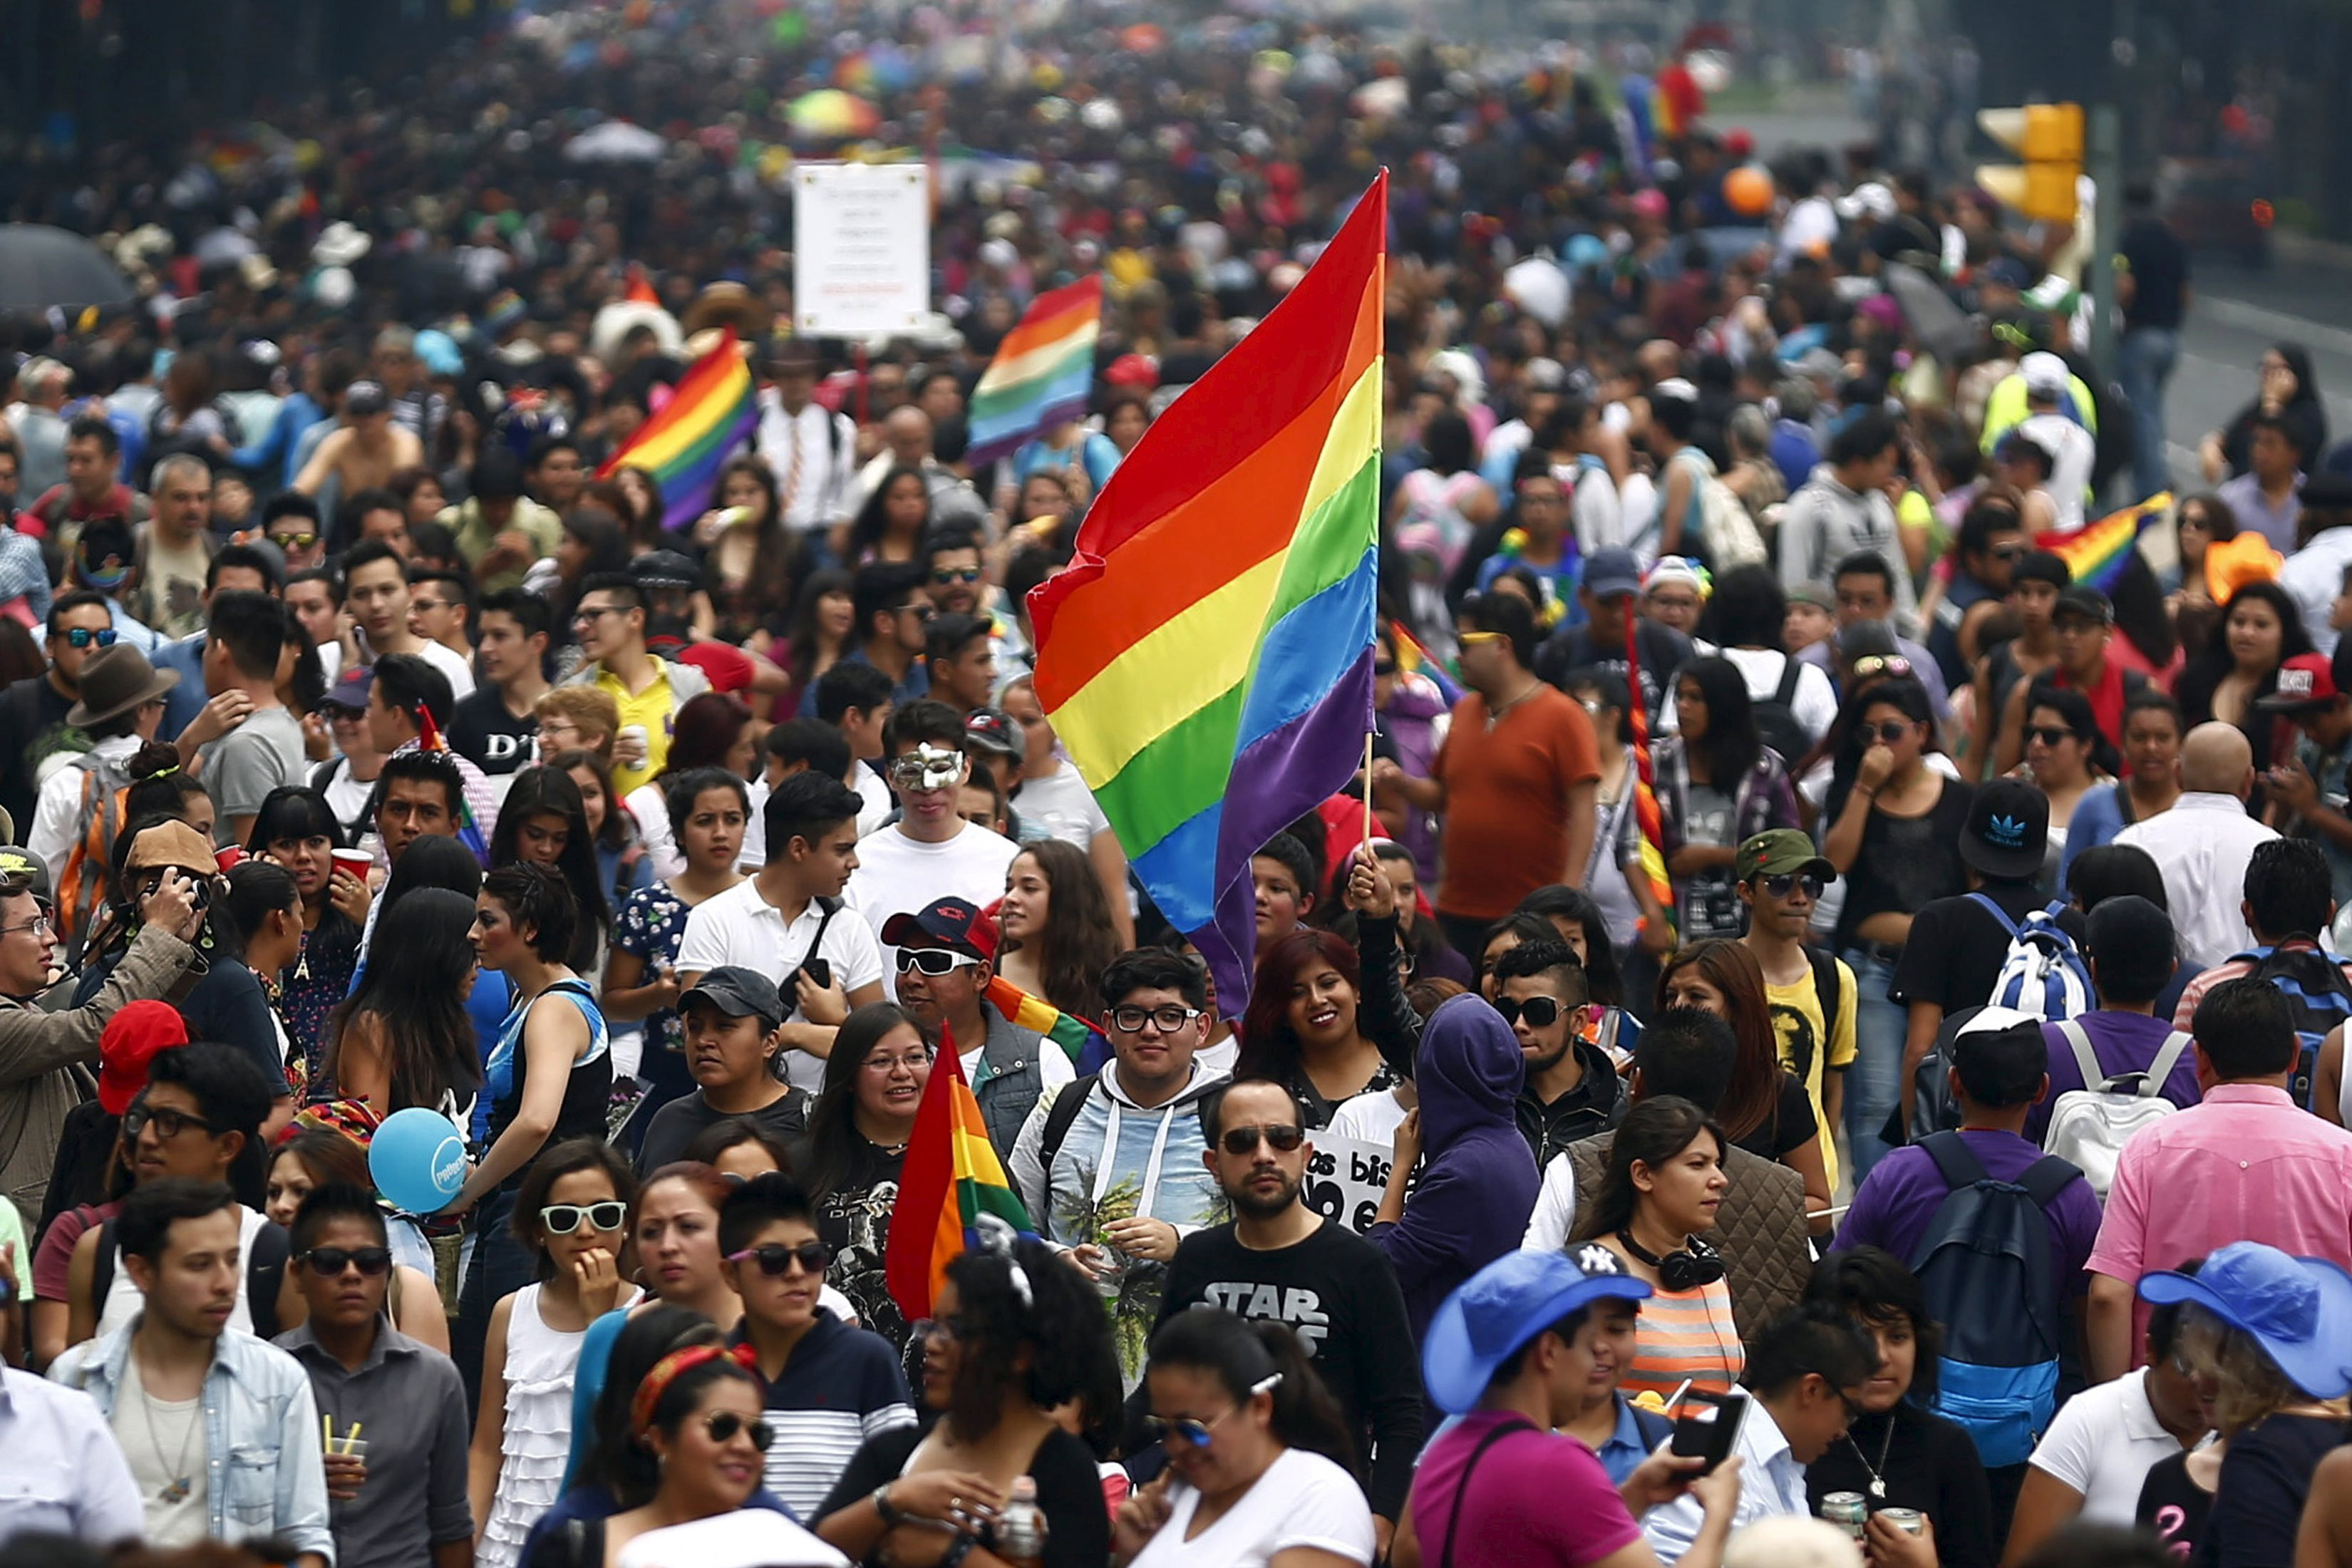 Participants march during a Gay Pride Parade in Mexico City on June 27, 2015.